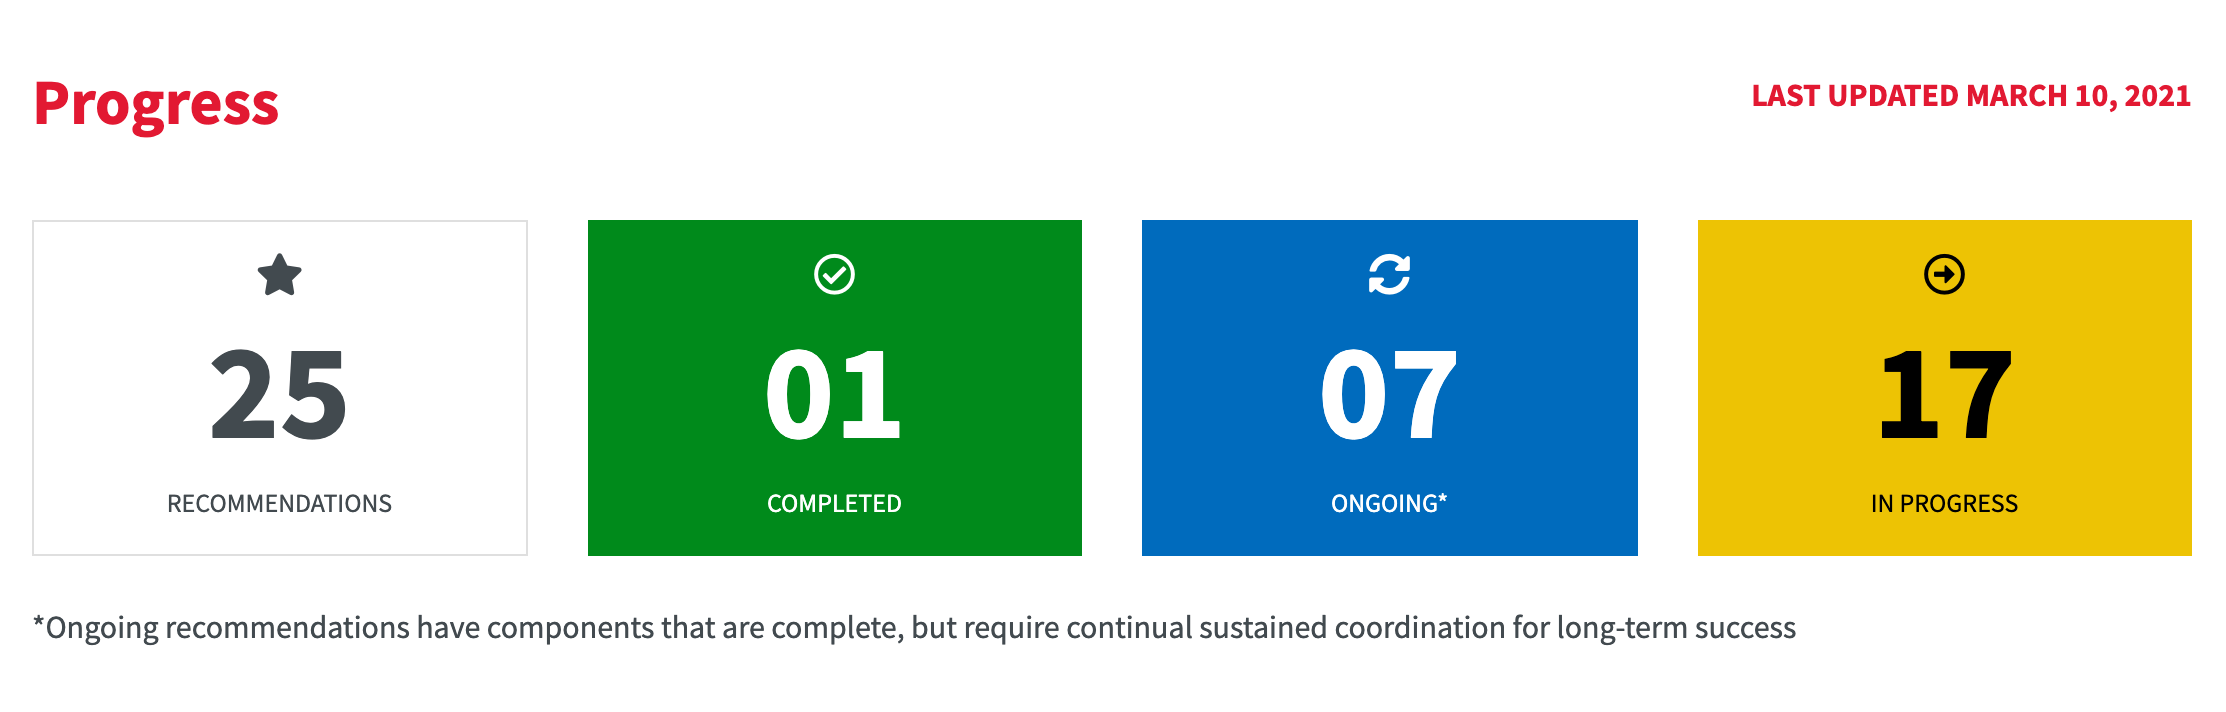 Screenshot of the Critical Issues Dashboard progress section